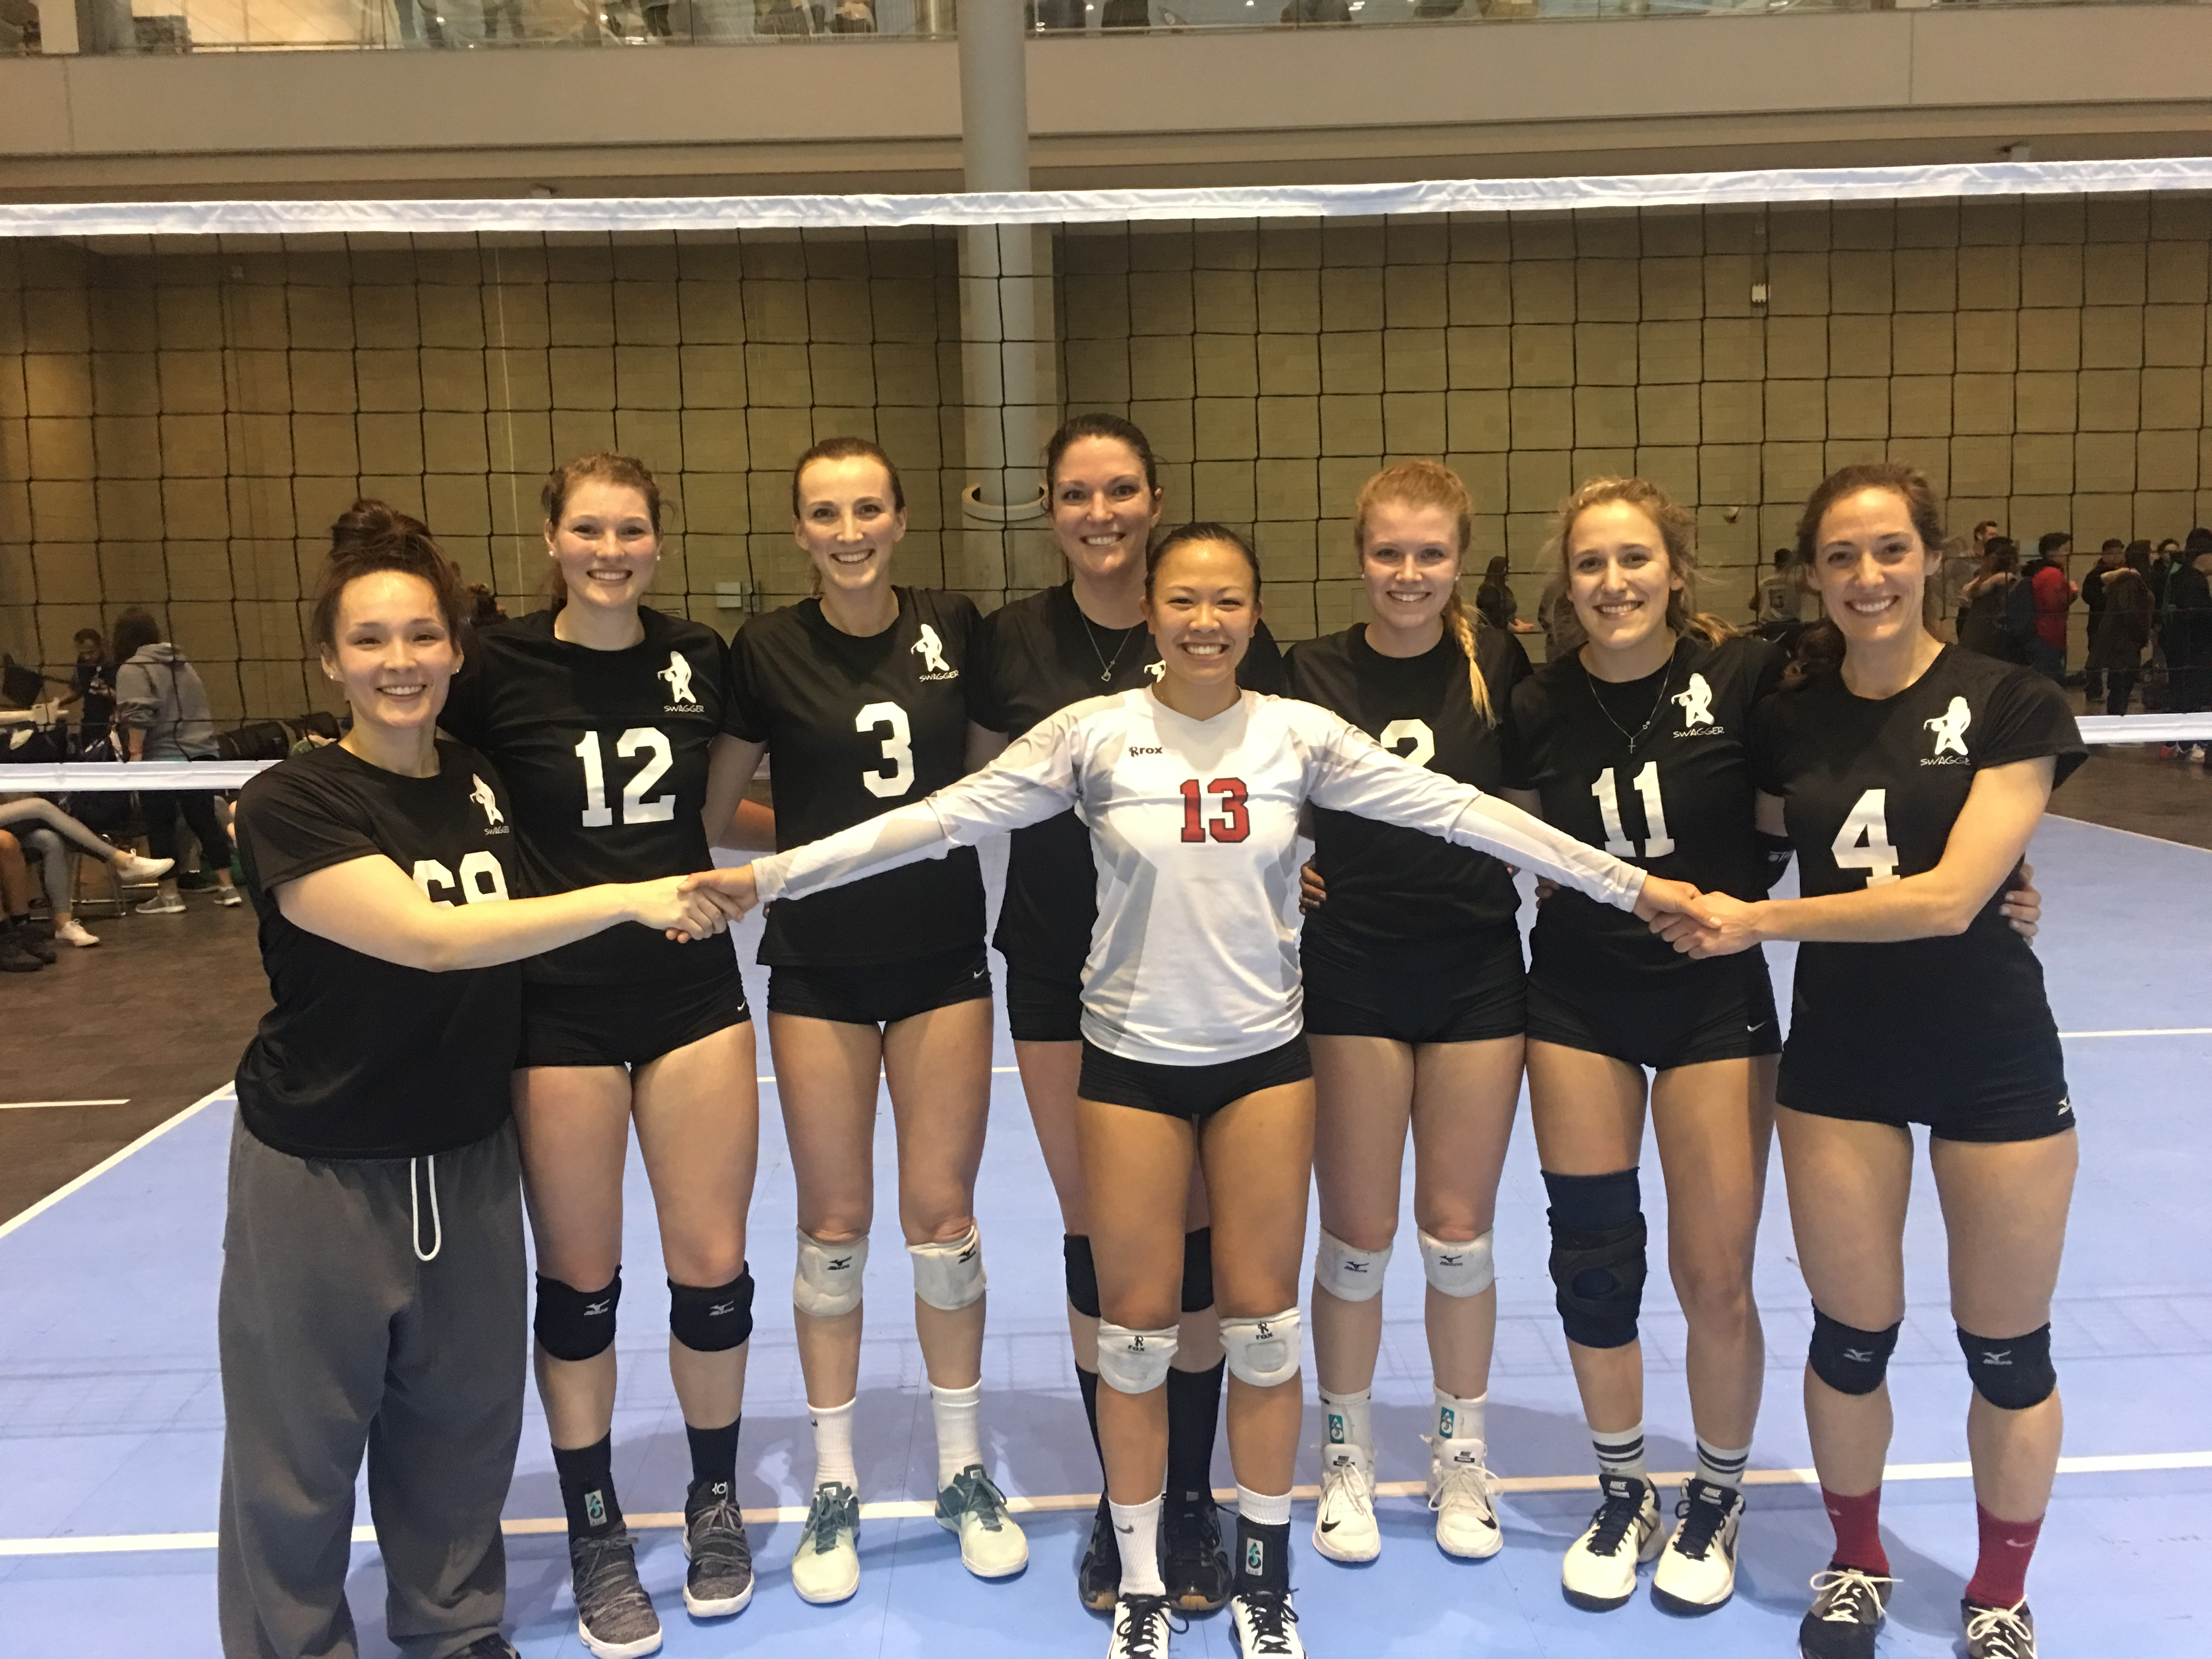 Little Rascals beat Trouble in the Women's USAV A/AA at the BCEC